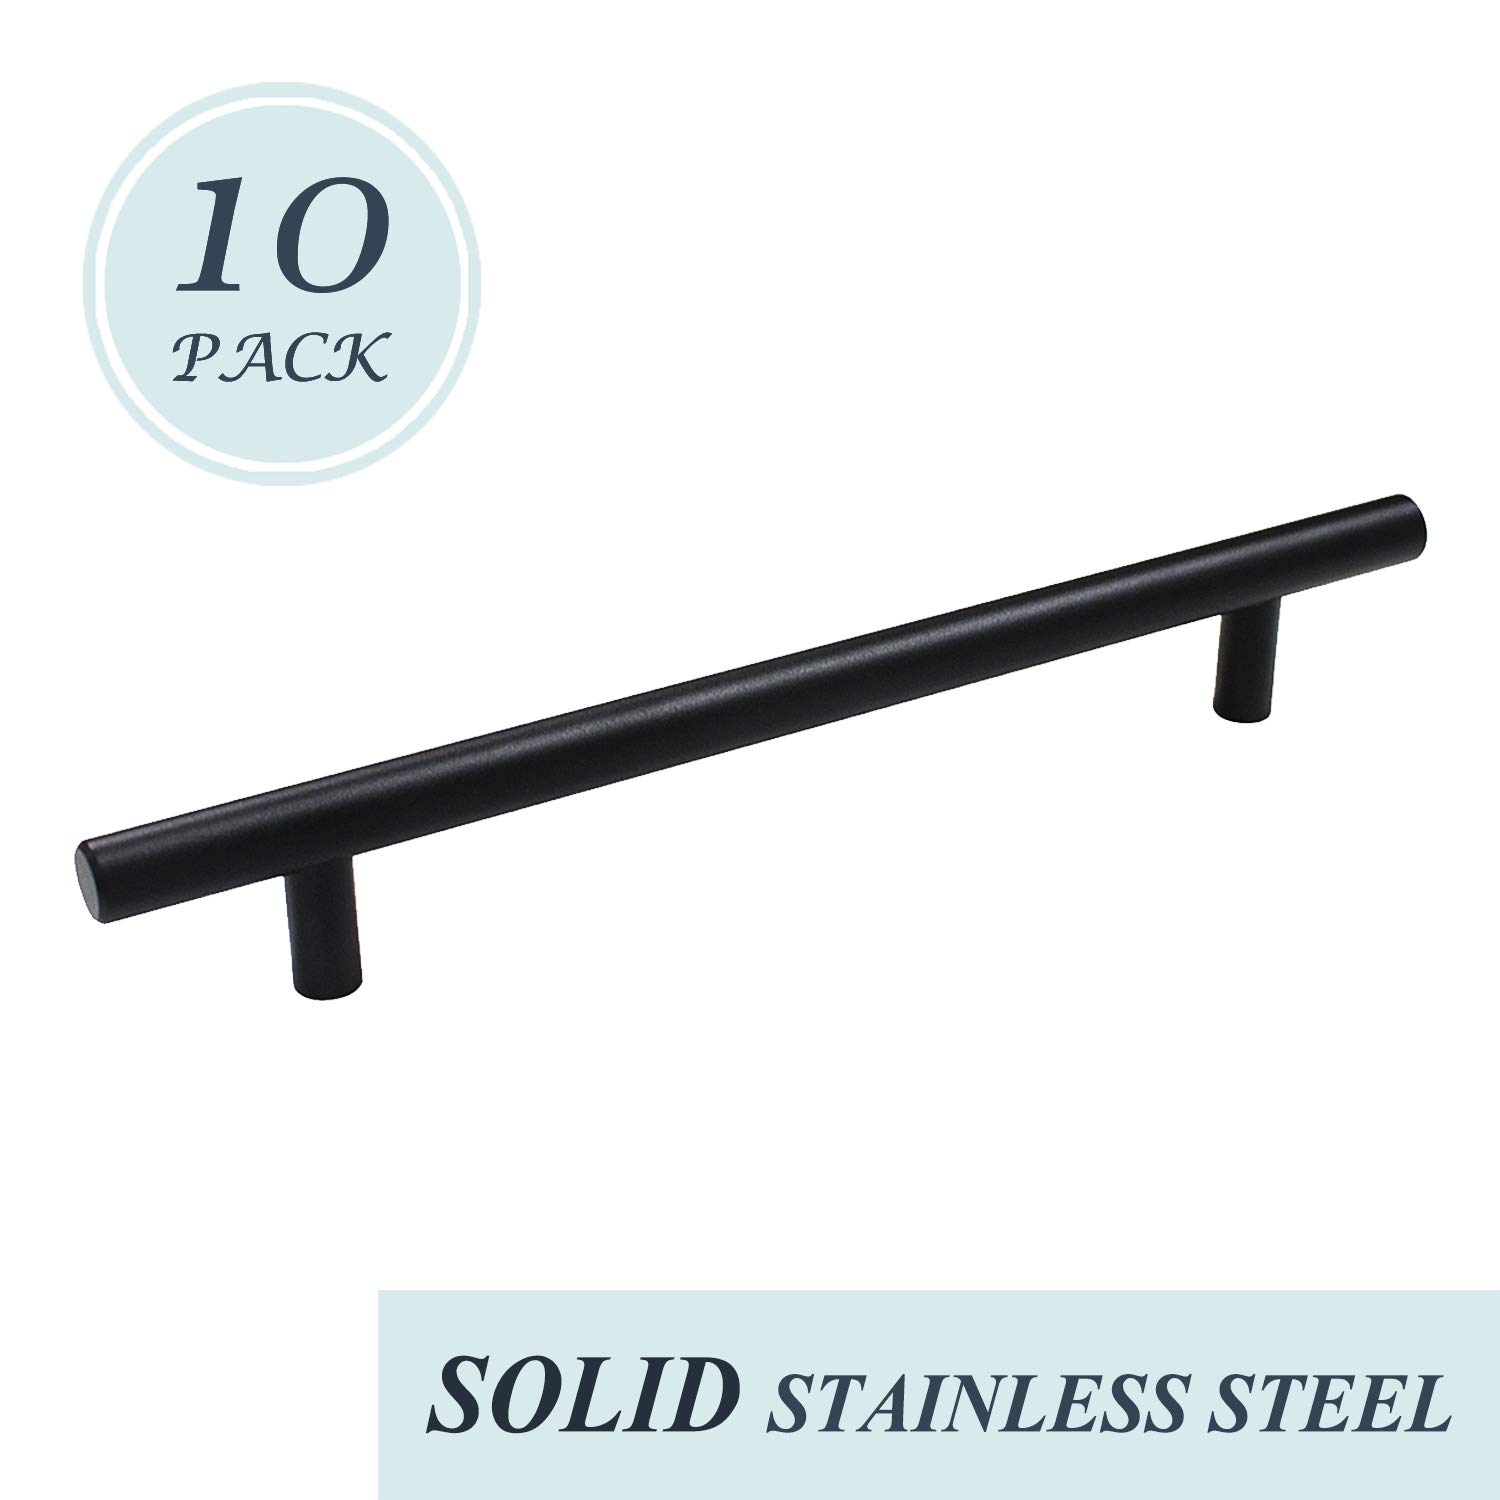 """Modern Cabinet Pulls and Handles 6-1/2"""" Hole Centers - Black Solid Stainless Steel Kitchen Cupboard Handles Dresser Drawer Handles 8-3/4"""" Length, 10 Pack"""